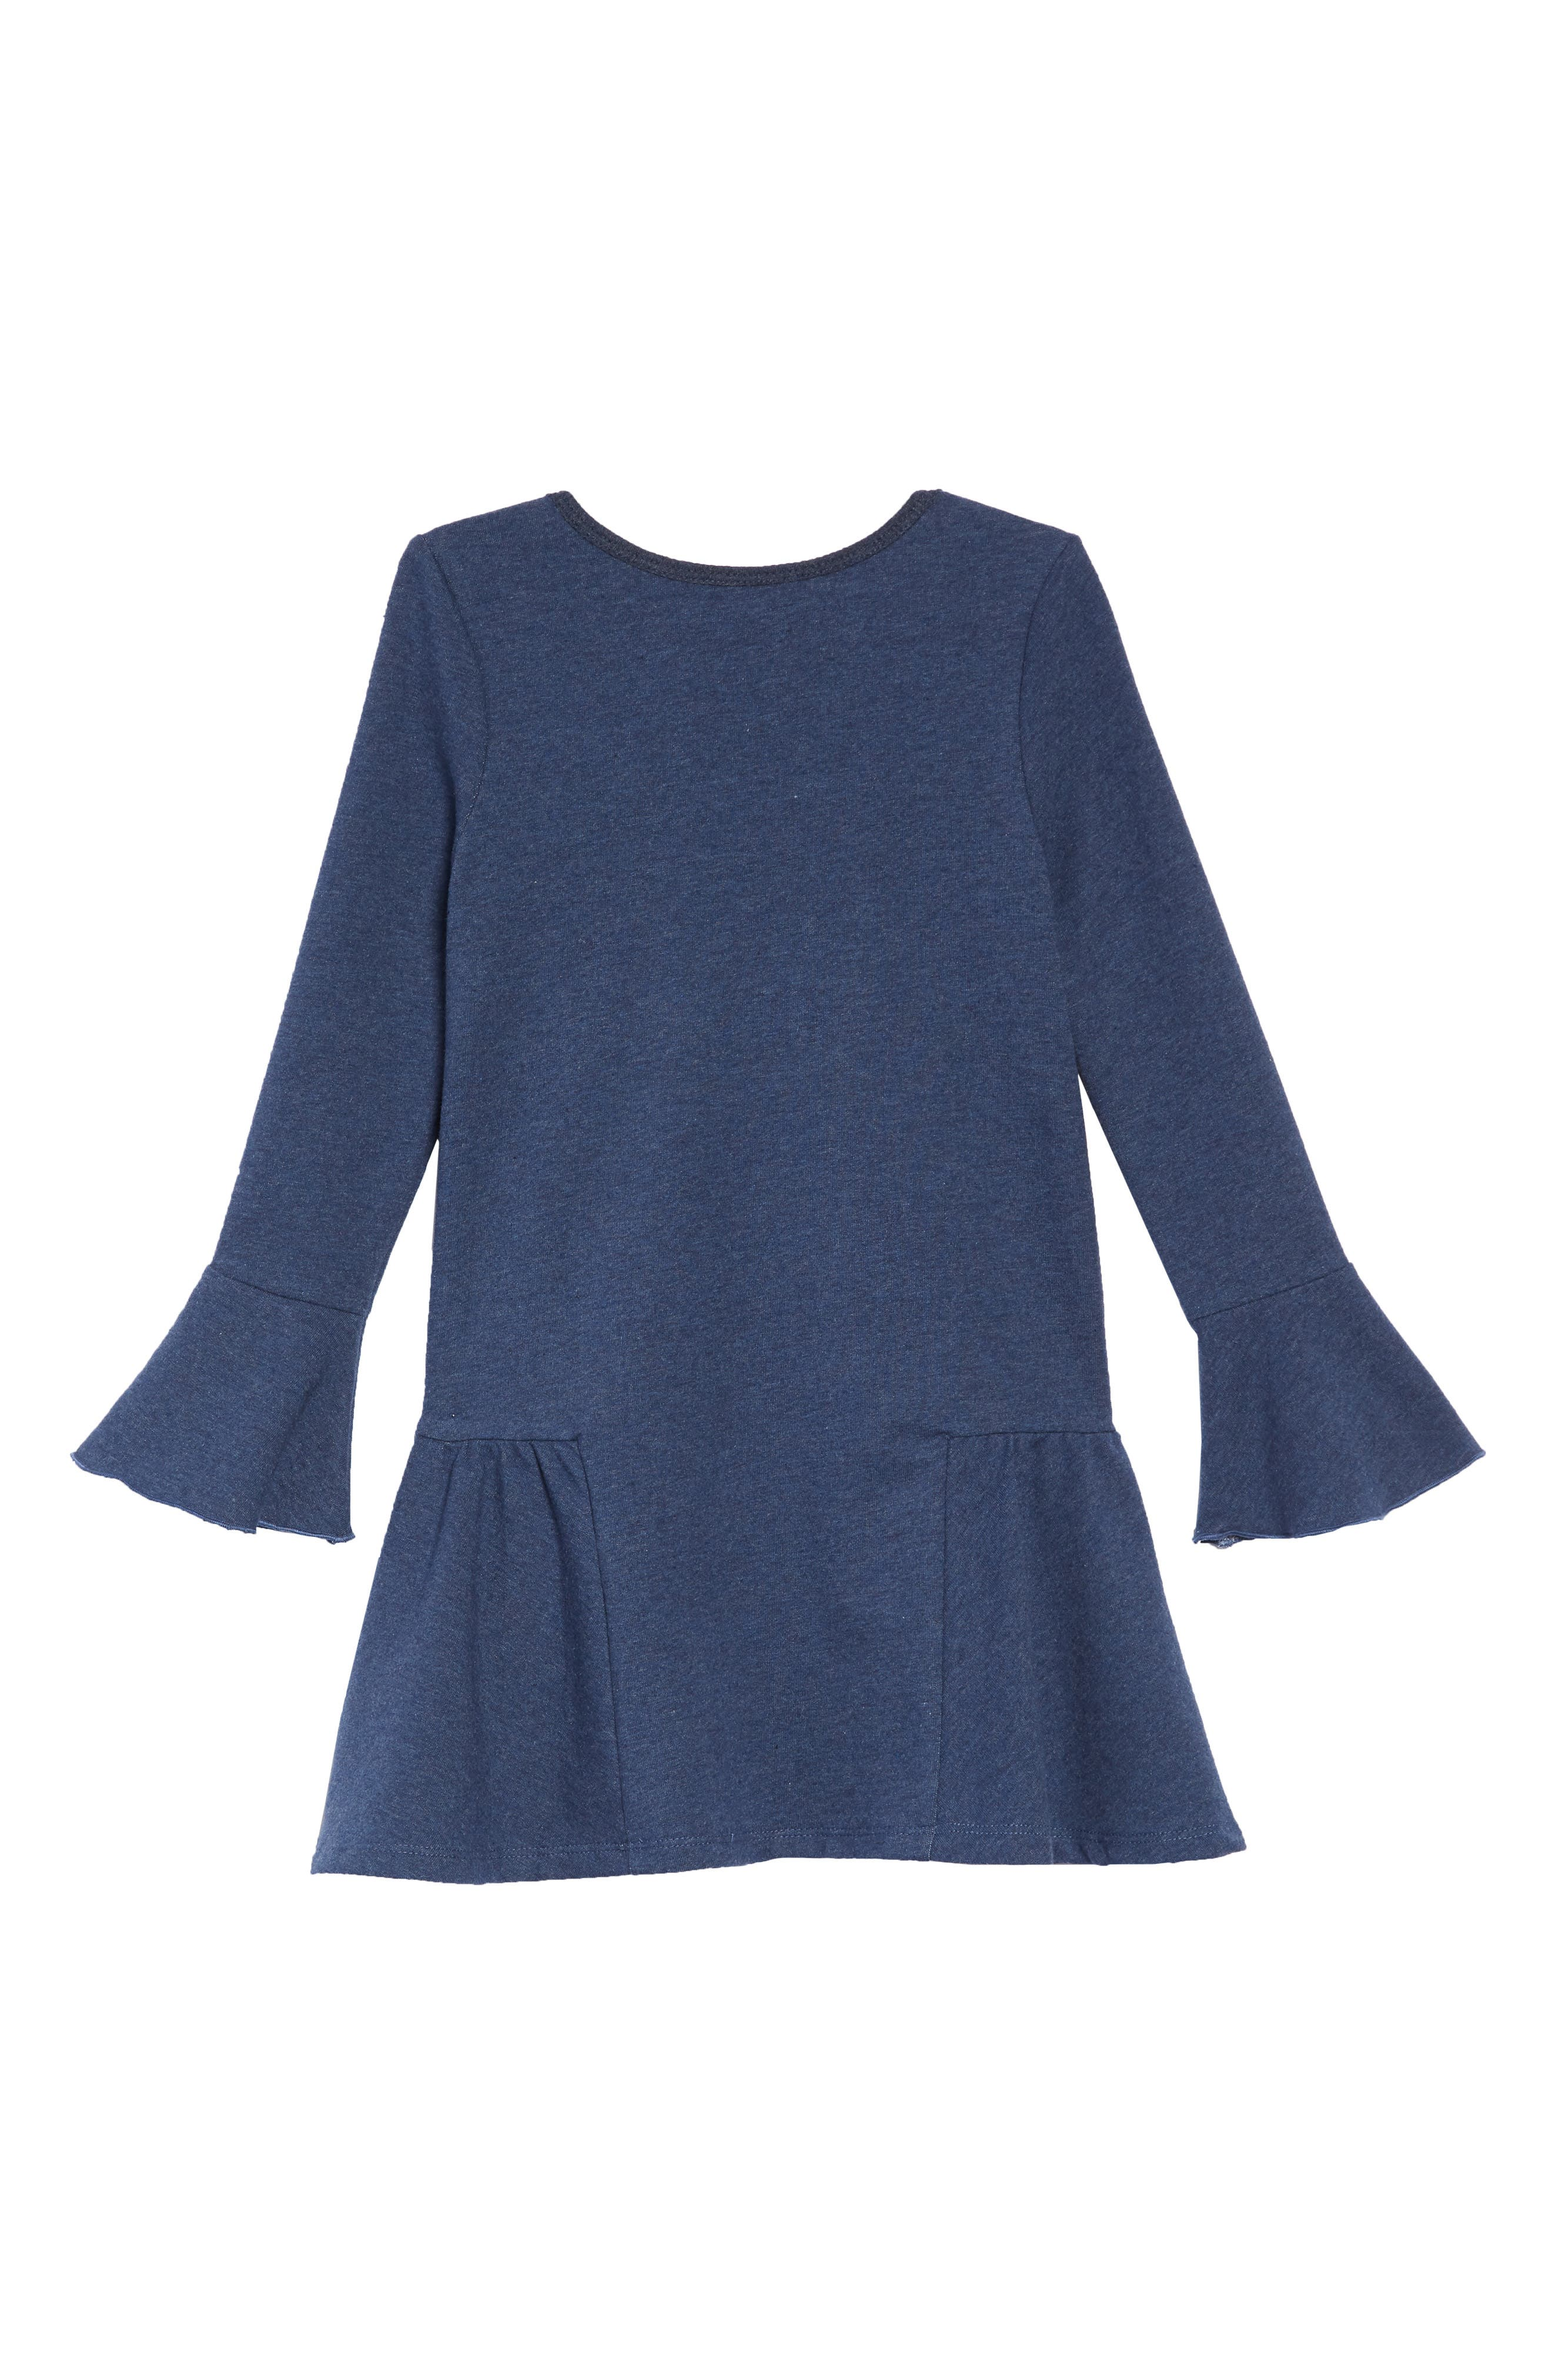 Cool Stuff Knit Dress with Zip Pouch,                             Alternate thumbnail 3, color,                             NAVY